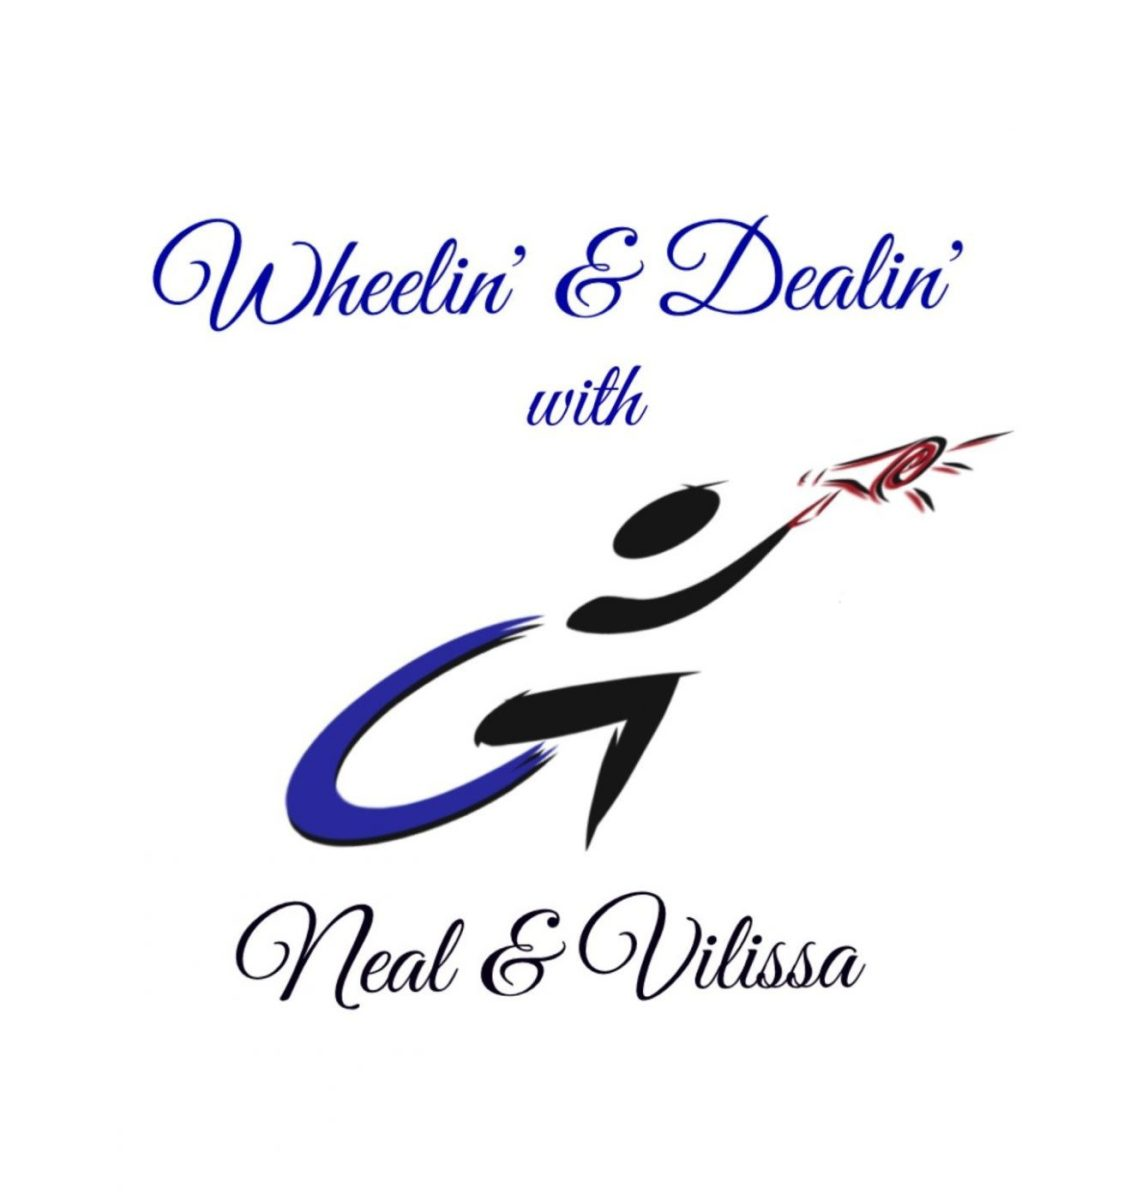 Wheelin' & Dealin' Politics Podcast w/Neal & Vilissa - Premiere Episode